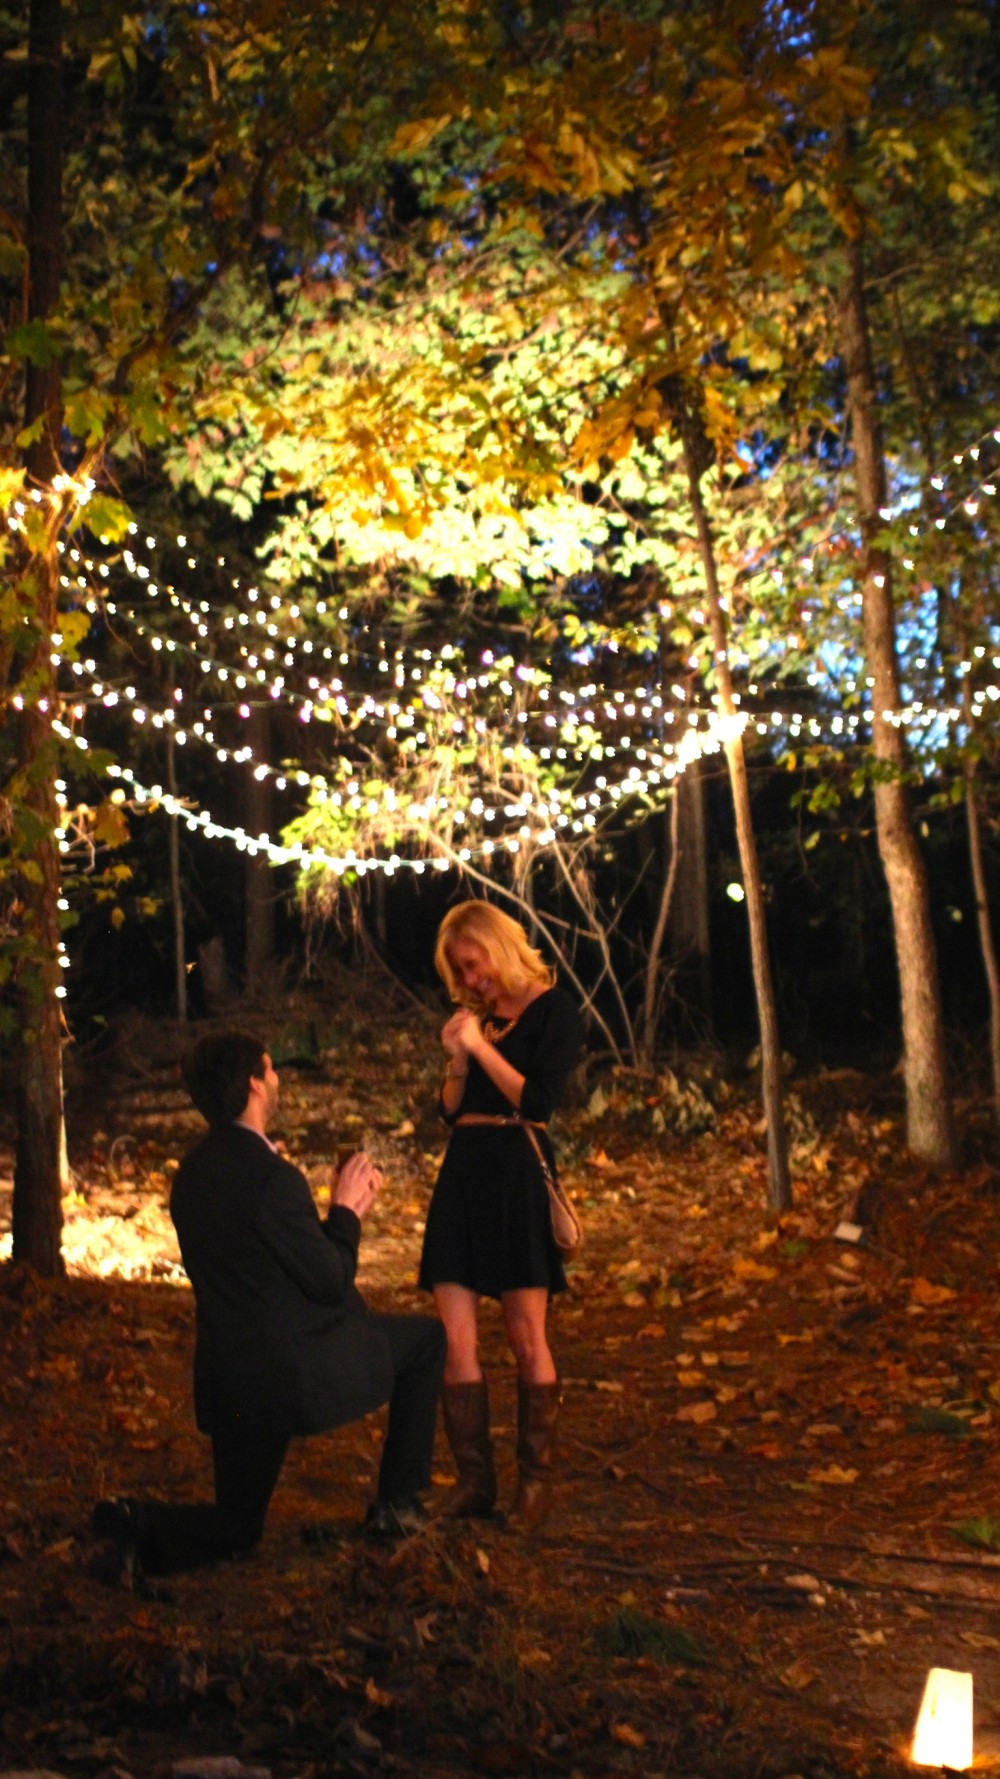 Image 8 of Carleigh and Paul's Magical Proposal